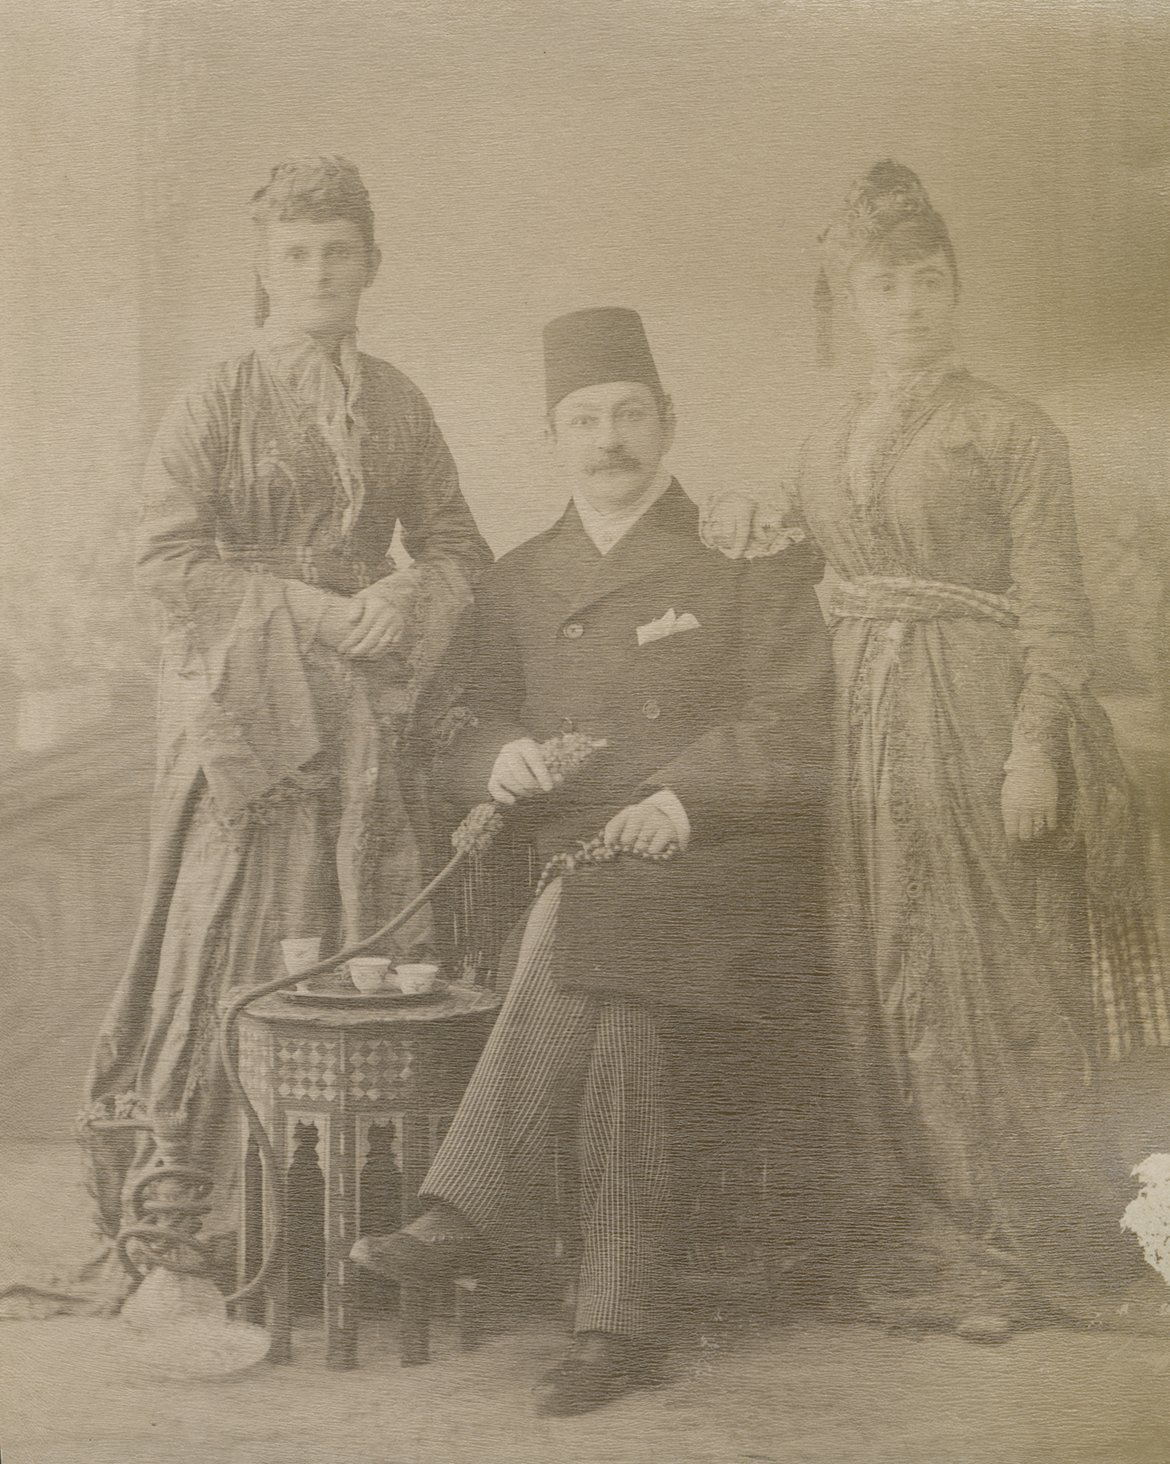 Man in fez and Western attire between two women in Western gowns